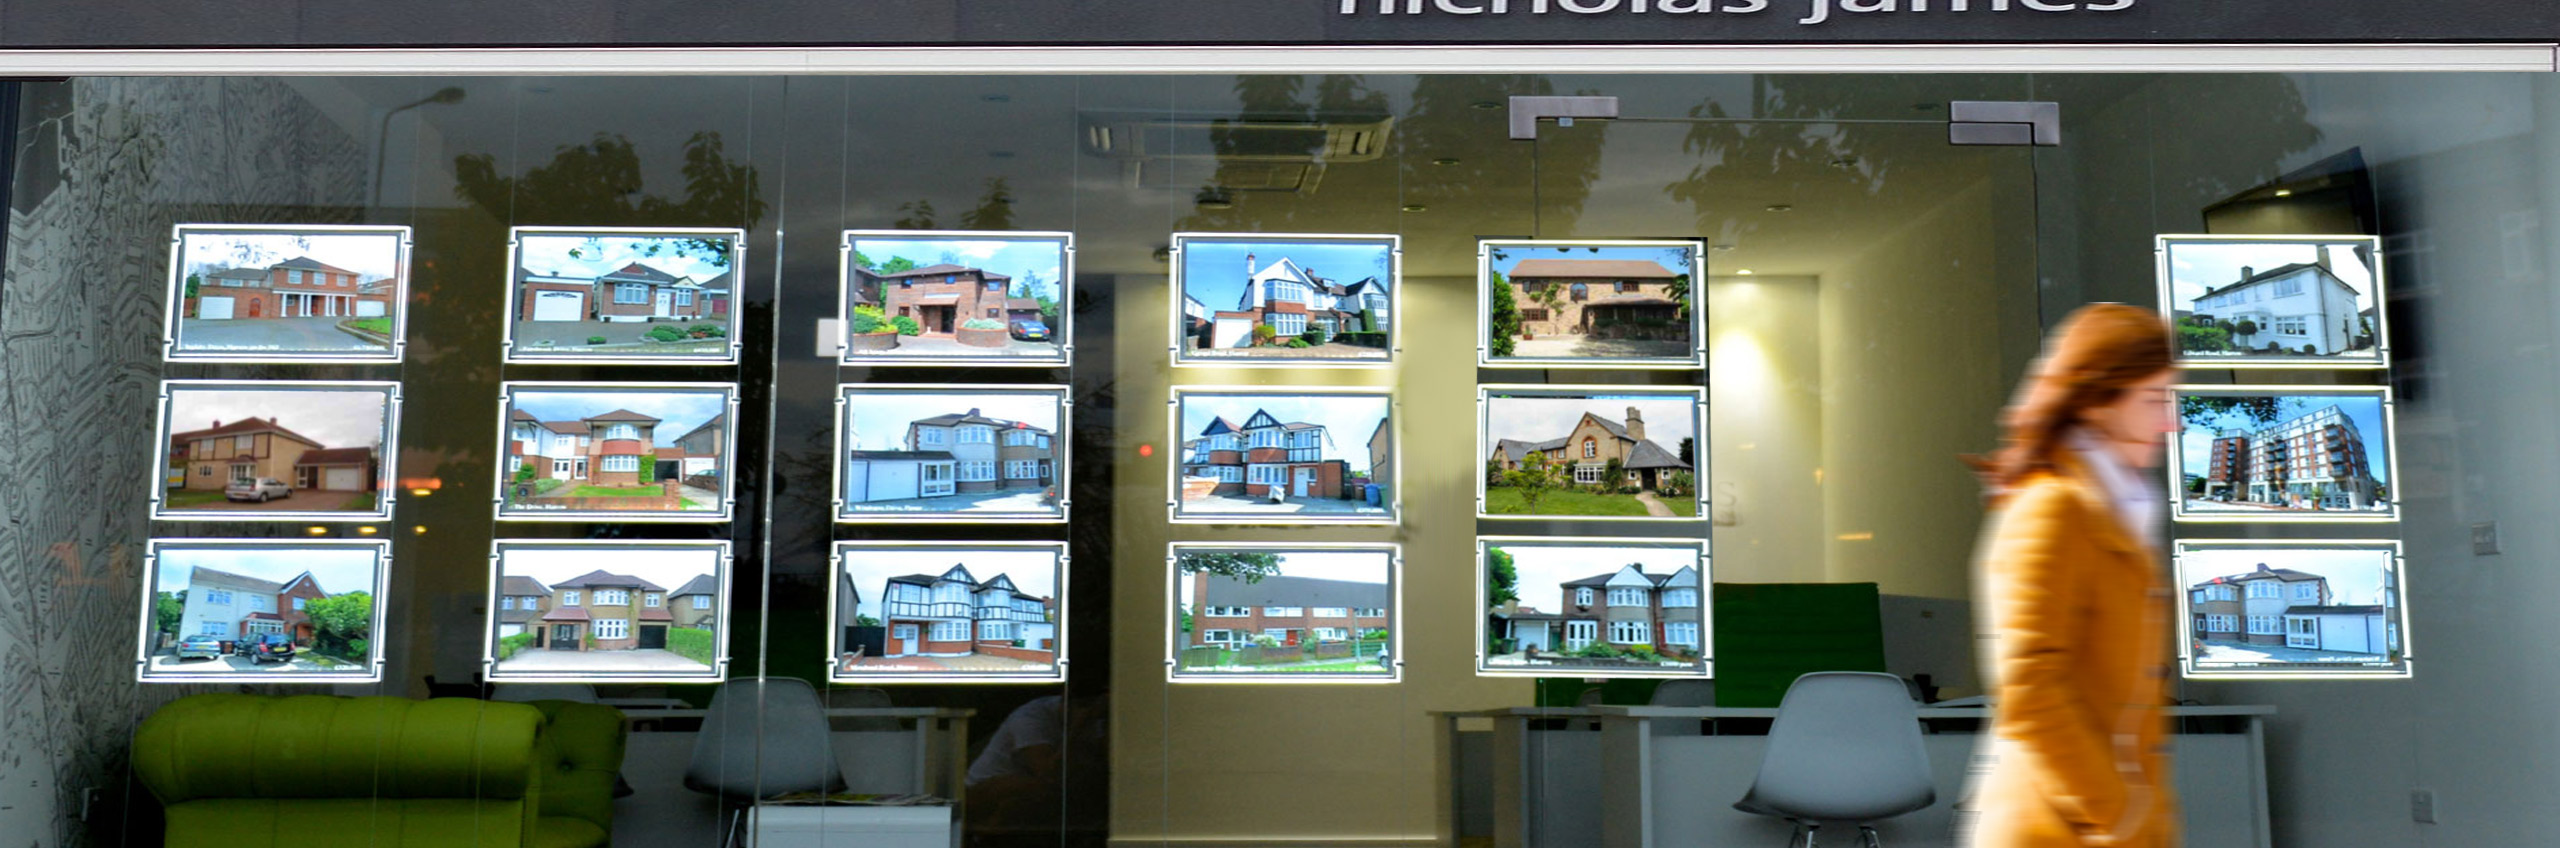 Estate Agents Signage and Displays